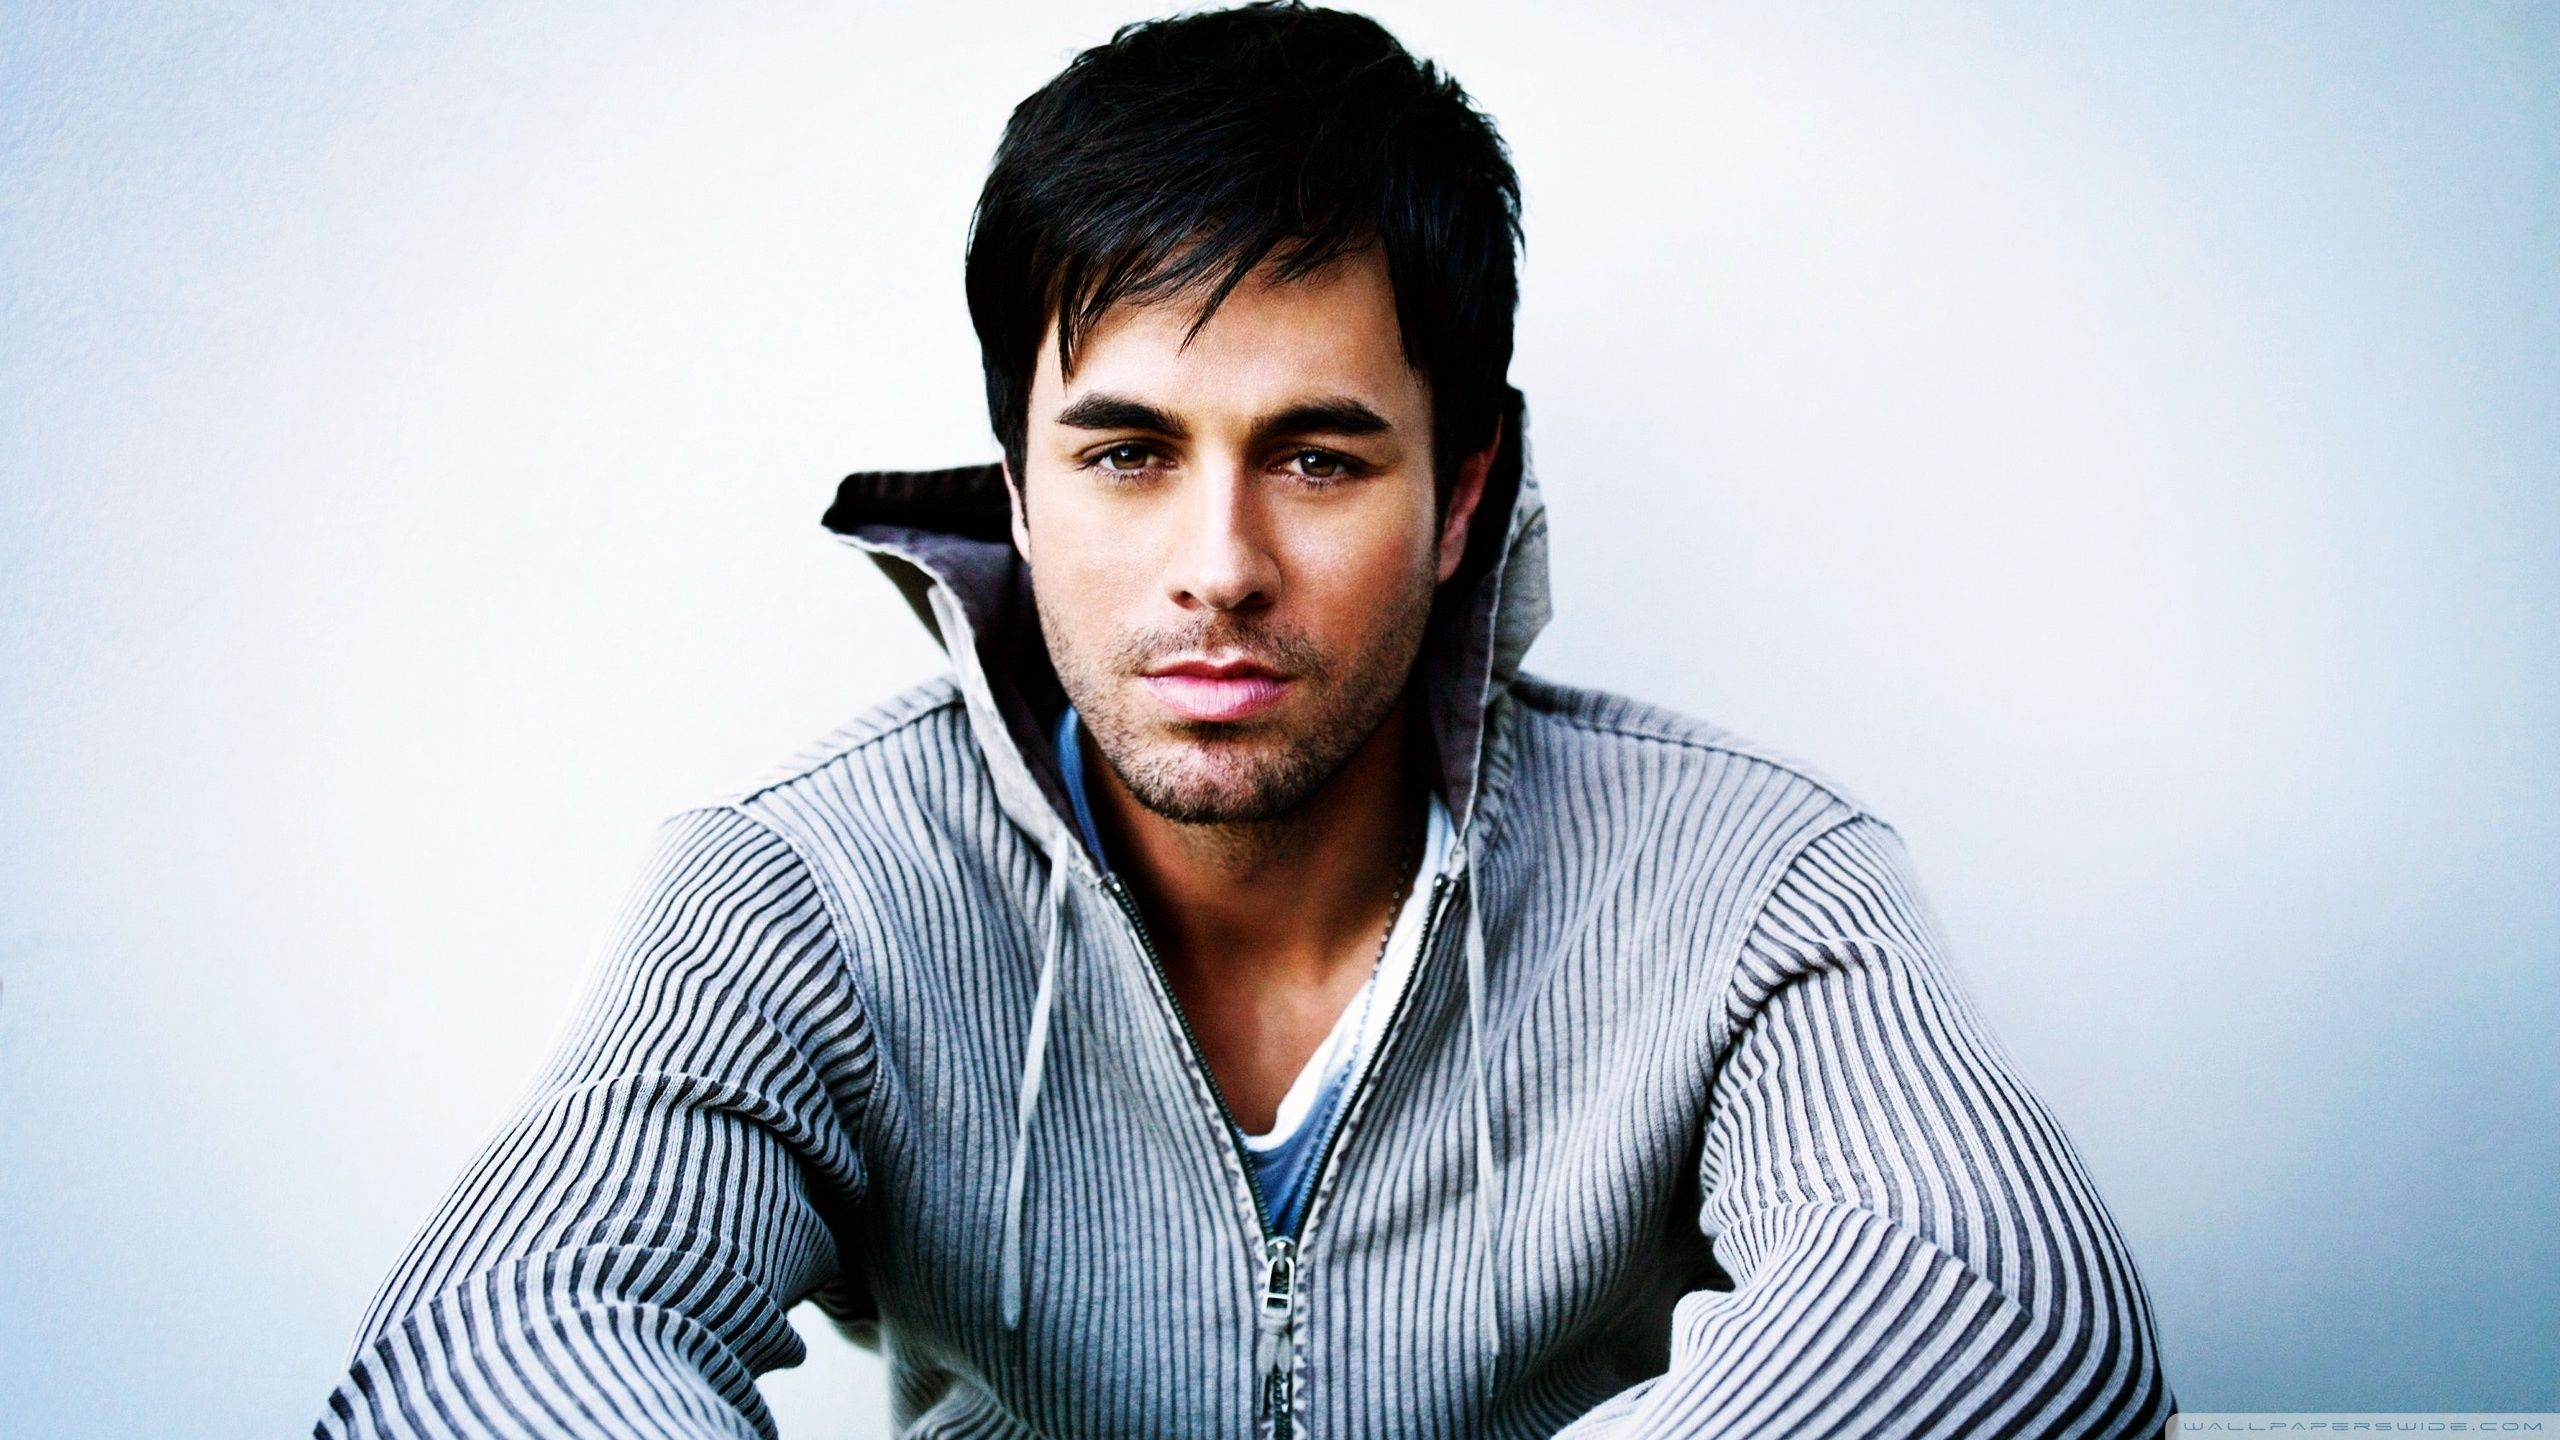 Enrique Iglesias is interested in not only girls, but also guys 06/21/2011 51